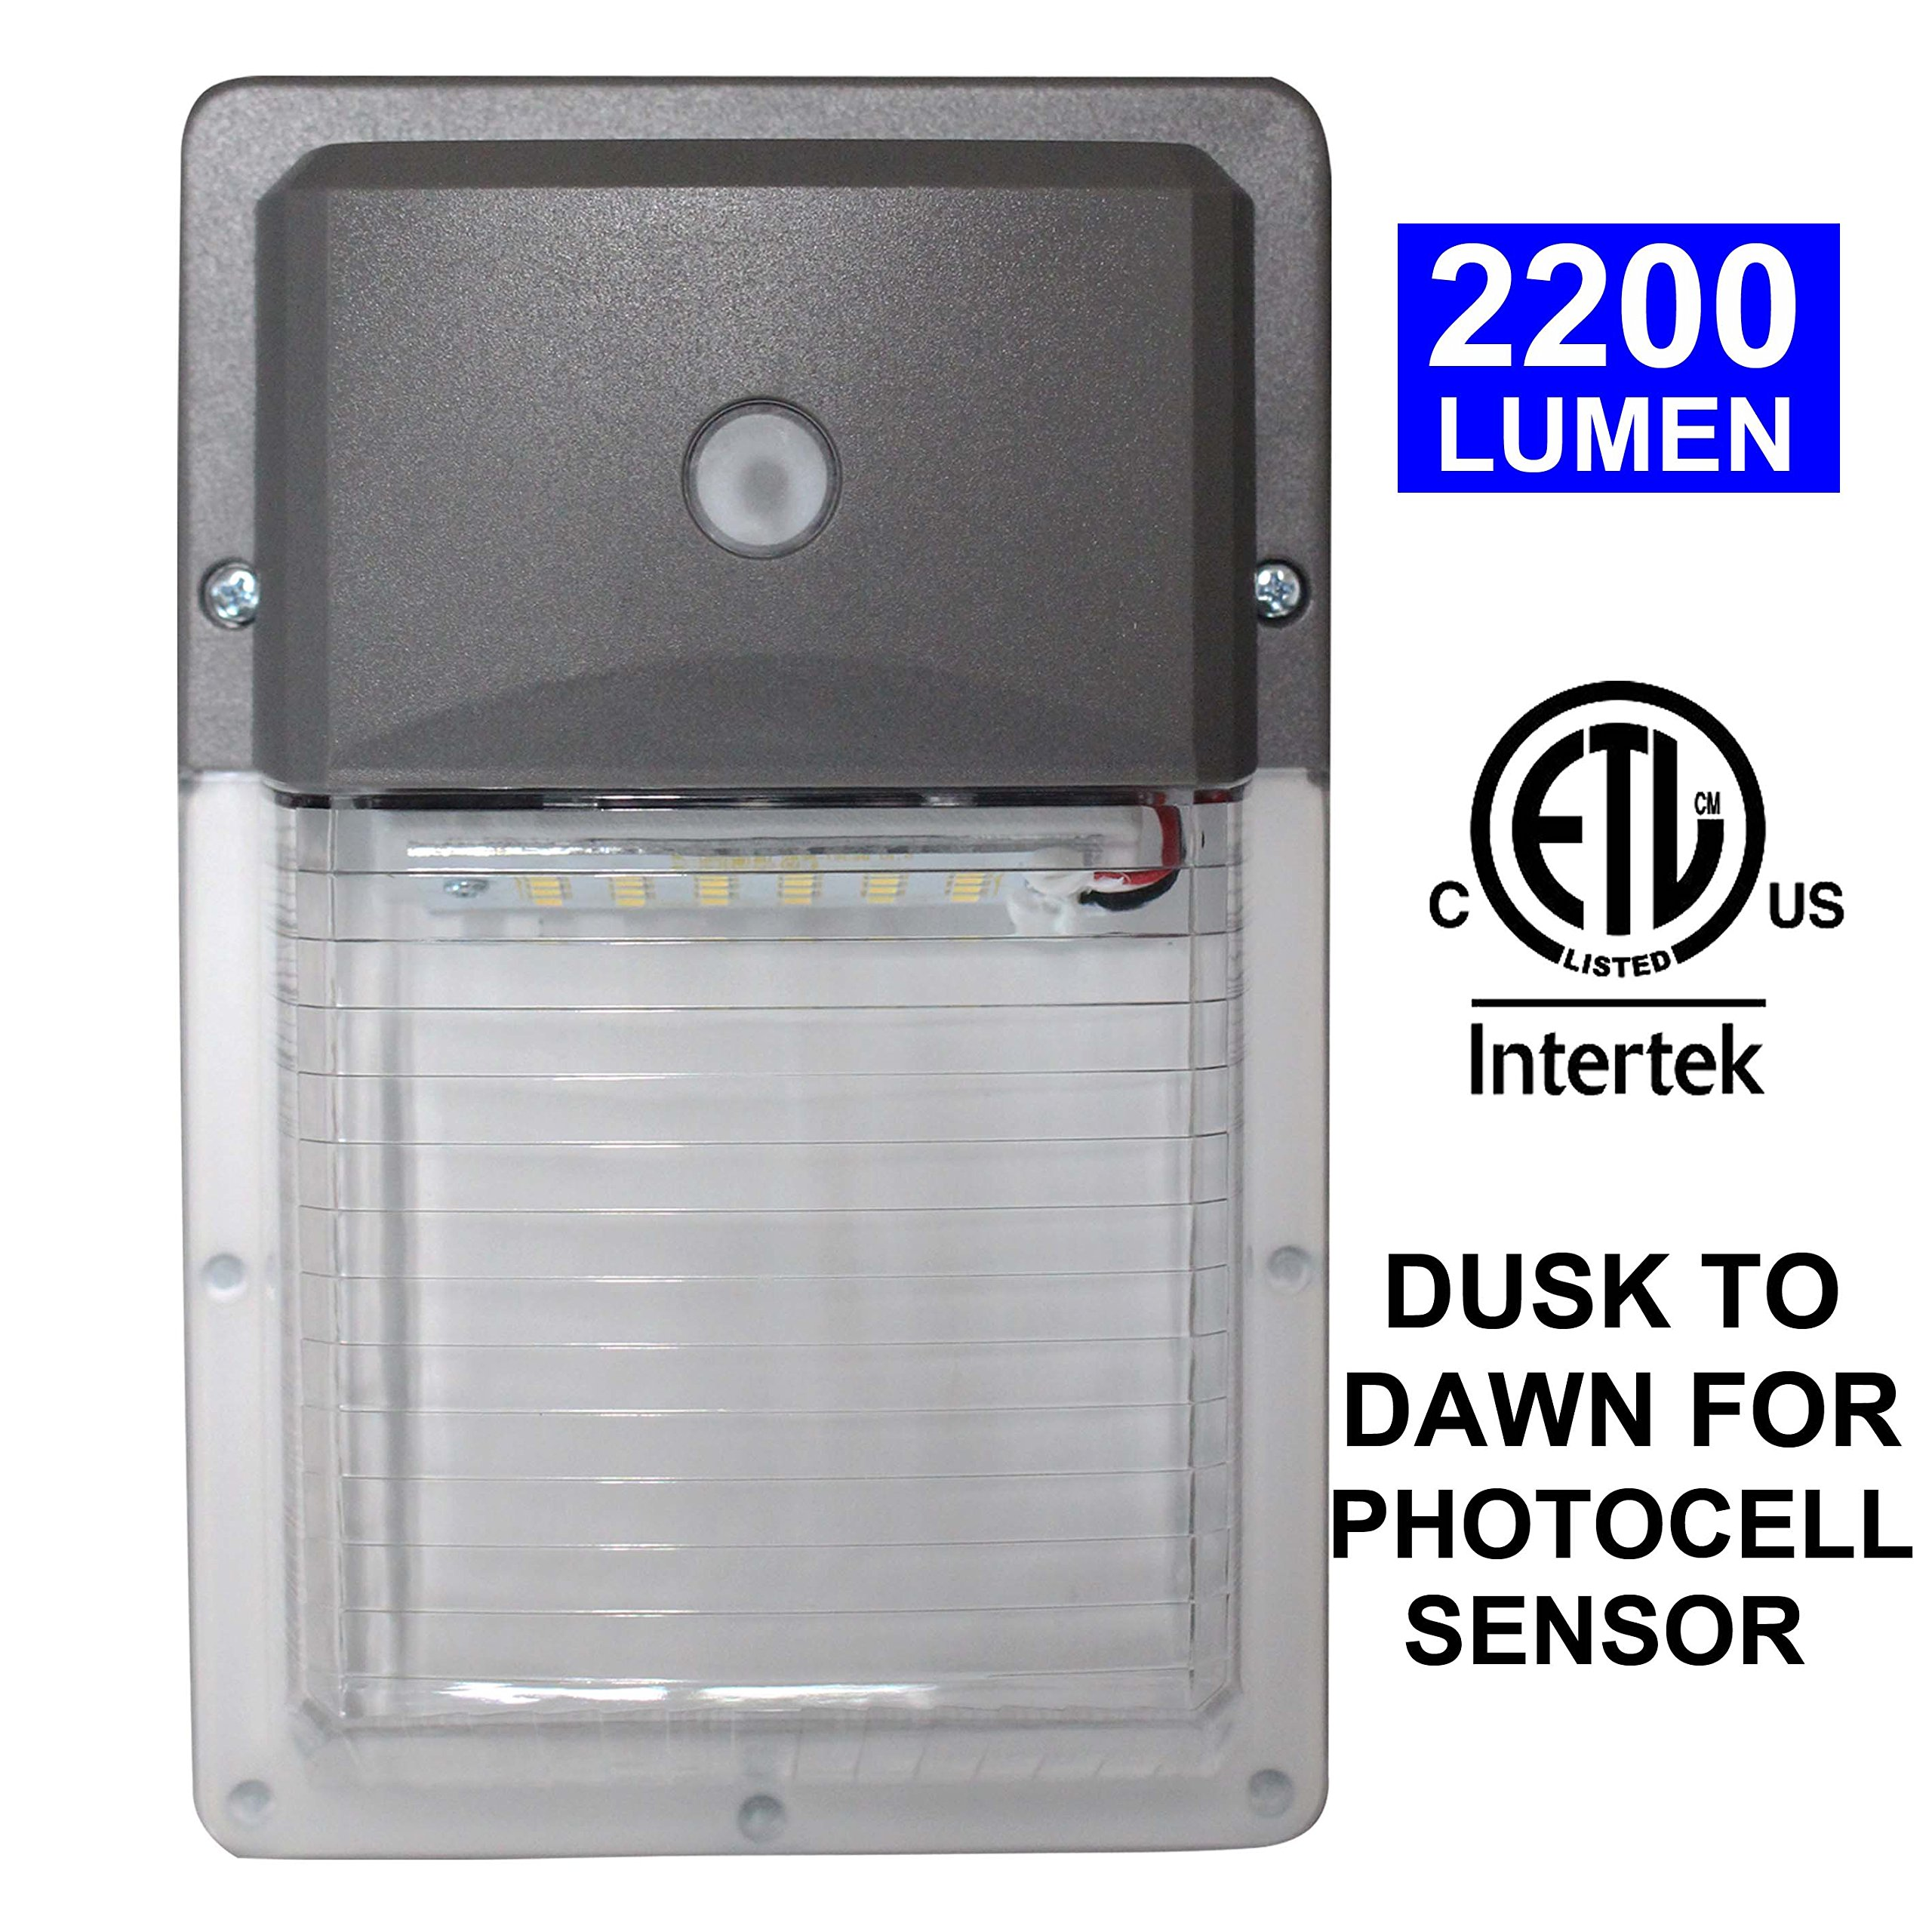 LED Wall Pack Light,18W 2200lm 5000K Daylight, Photocell Sensor with Dusk-to-dawn Funcation, IP65 Rated, 100-277Vac, 5-Year Warranty, Equivalent to150W, 18W 5000K (4PK)